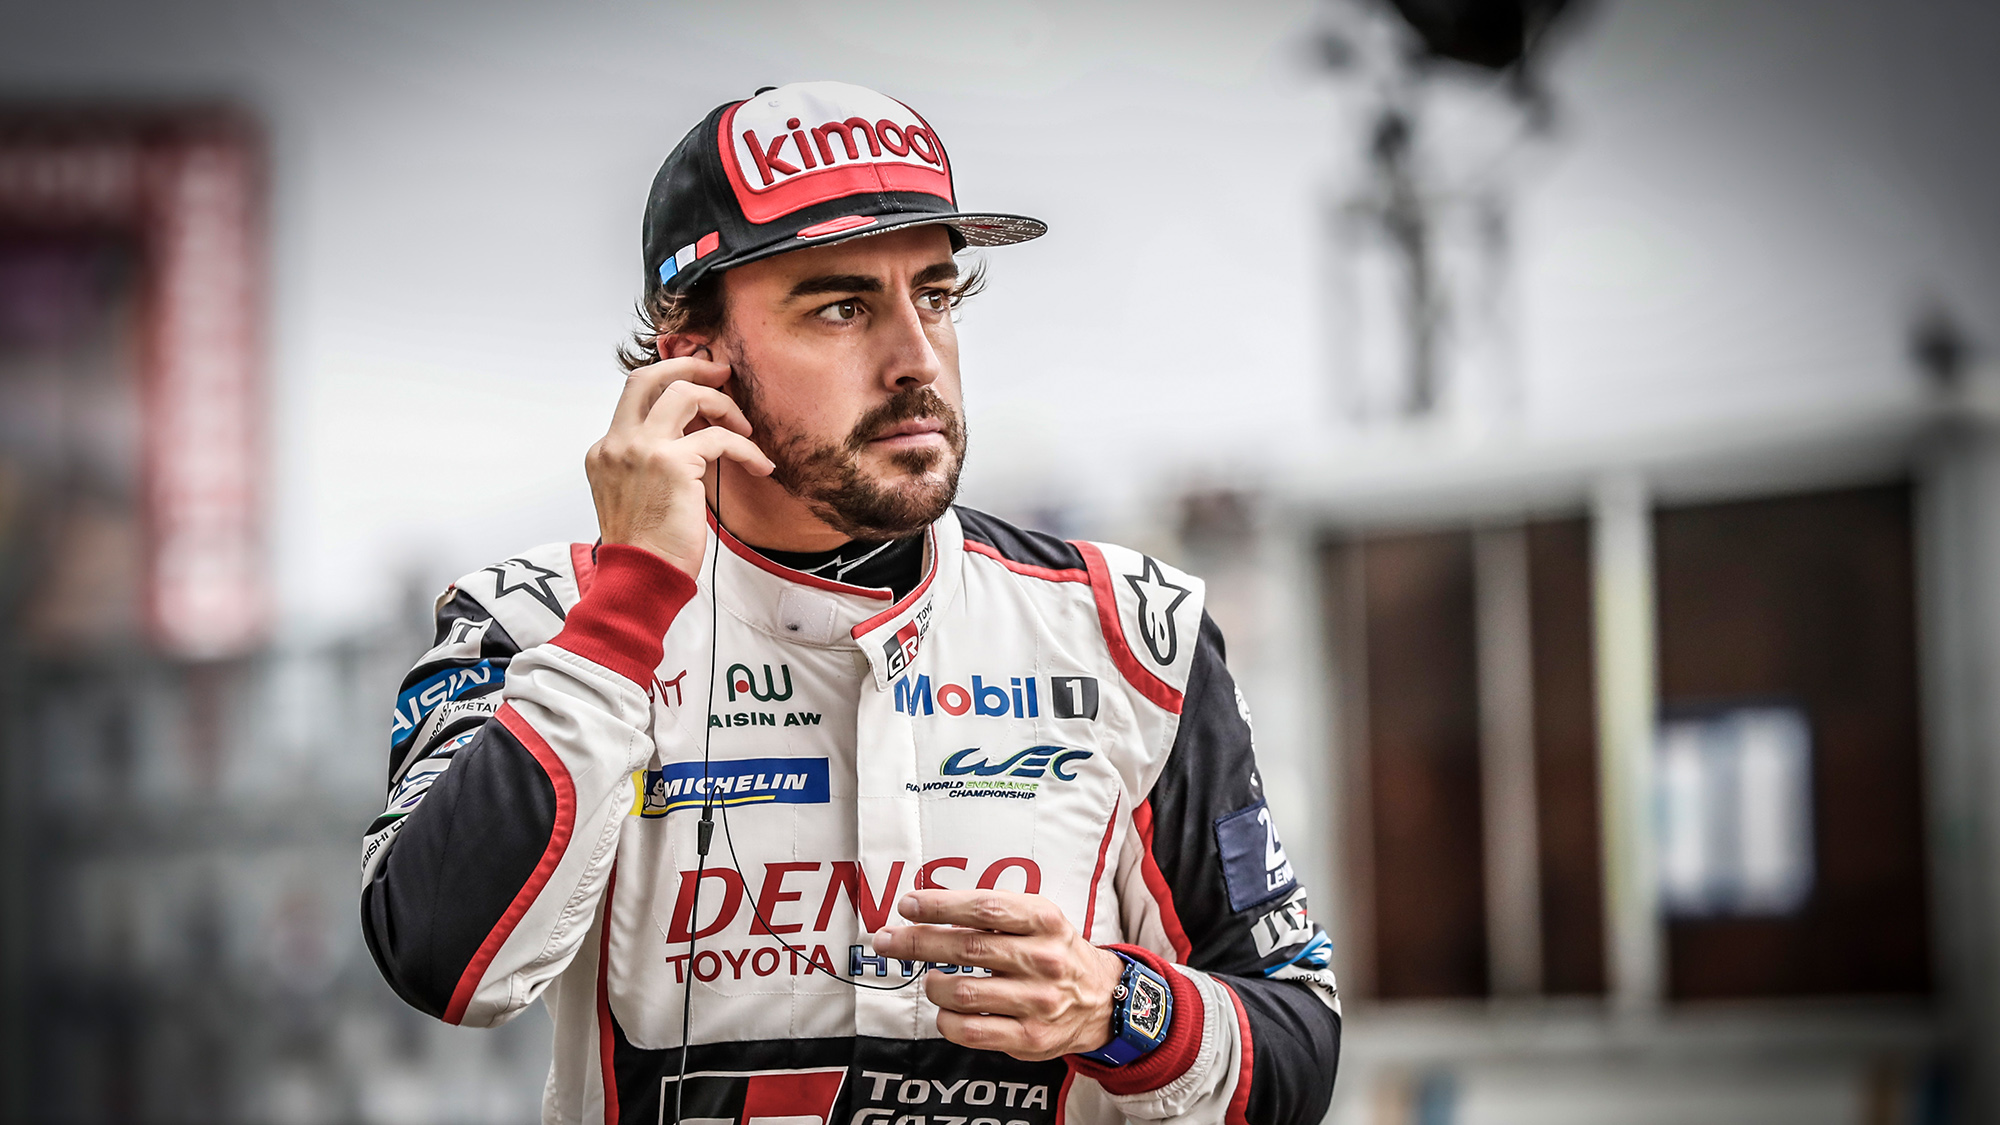 Fernando Alonso at the 2018 Le Mans 24 Hours